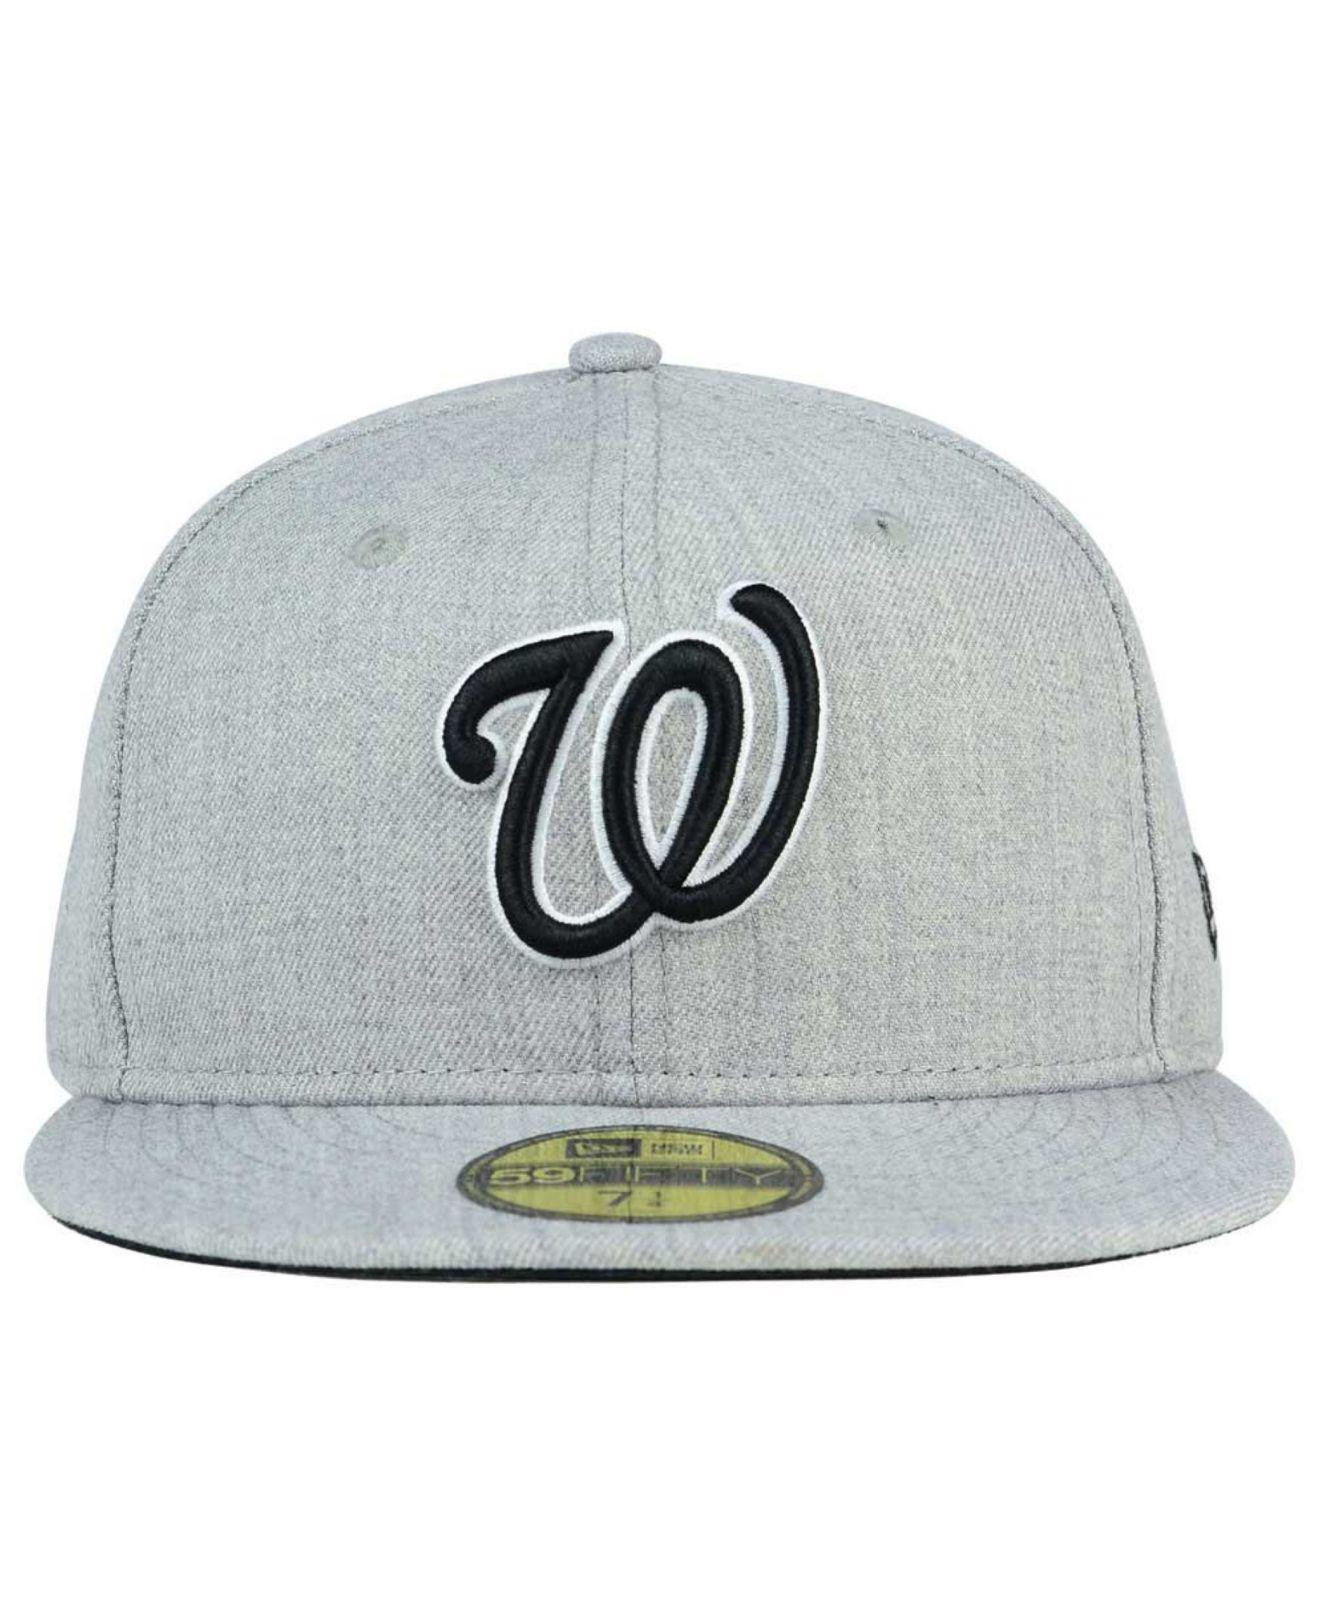 size 40 b5765 91dce ... usa lyst ktz washington nationals heather black white 59fifty cap in  gray for men 08d2b db7c0